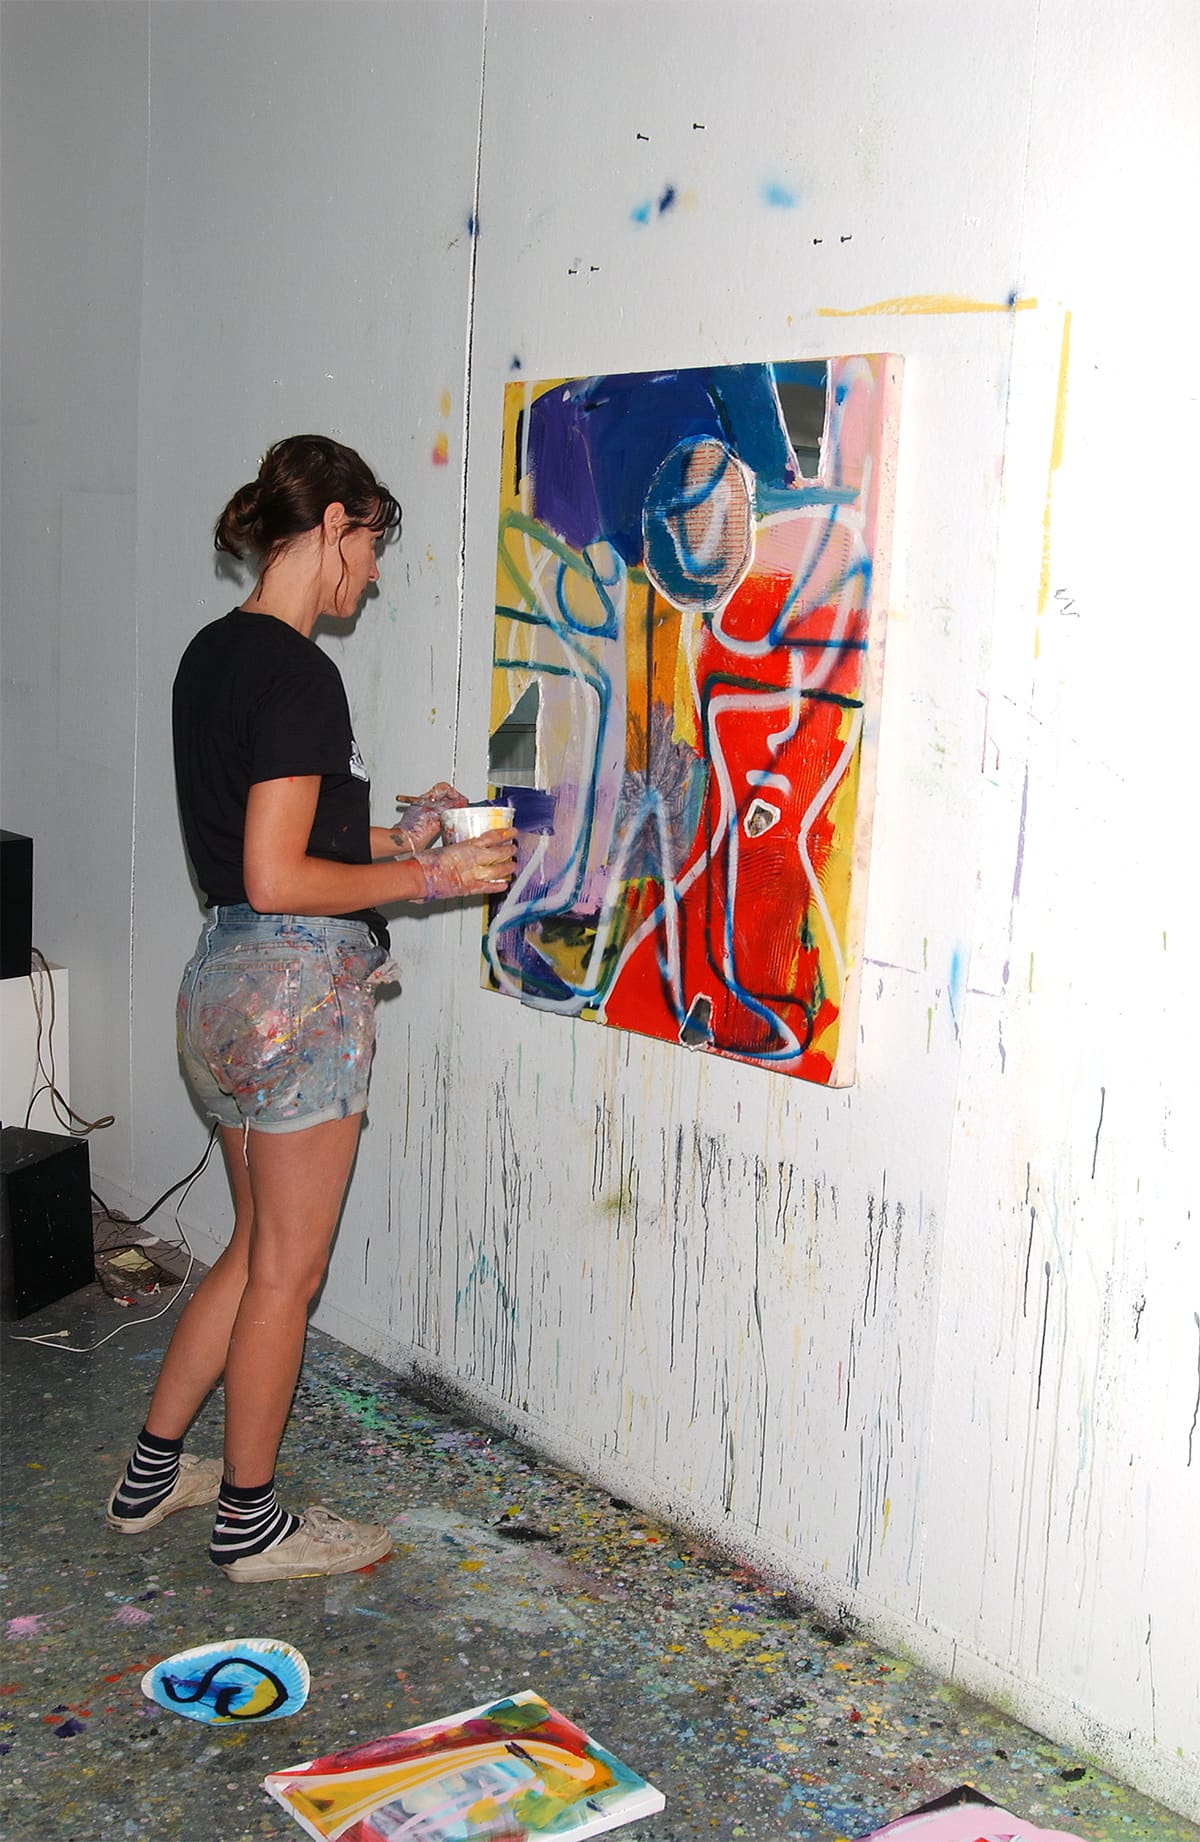 Artist Sadie Laska during her artist in residency at the former home and art studio of Elaine de Kooning in East Hampton, NY.